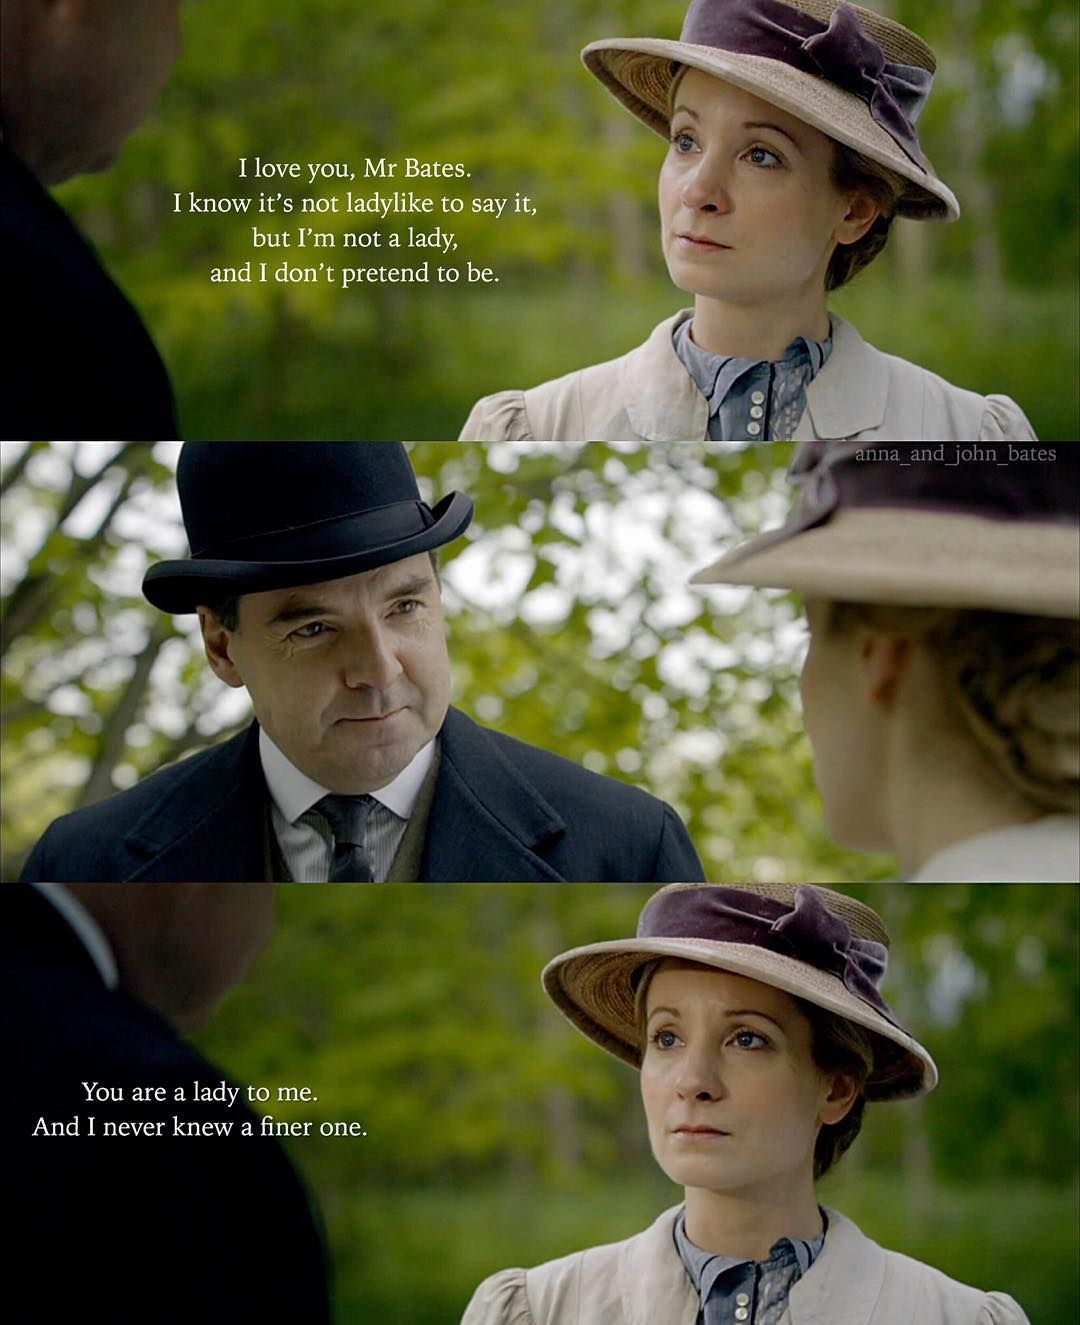 The Very Beginning Episode 1x05 Downtonabbey Annabates